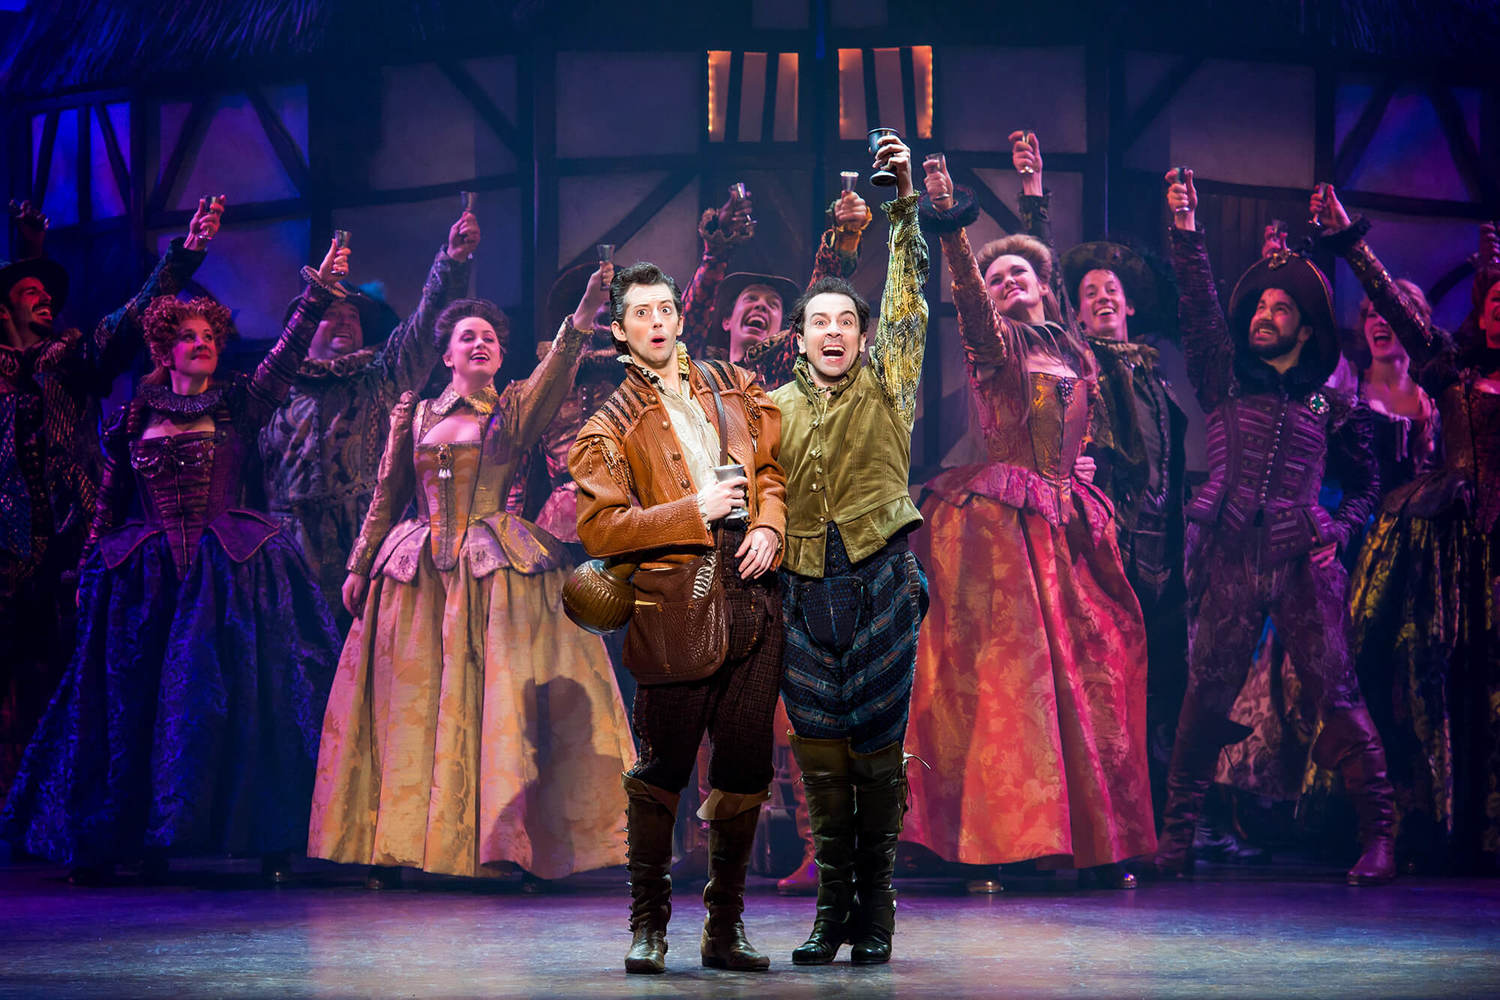 BWW Review: SOMETHING ROTTEN! at Bass Performance Hall